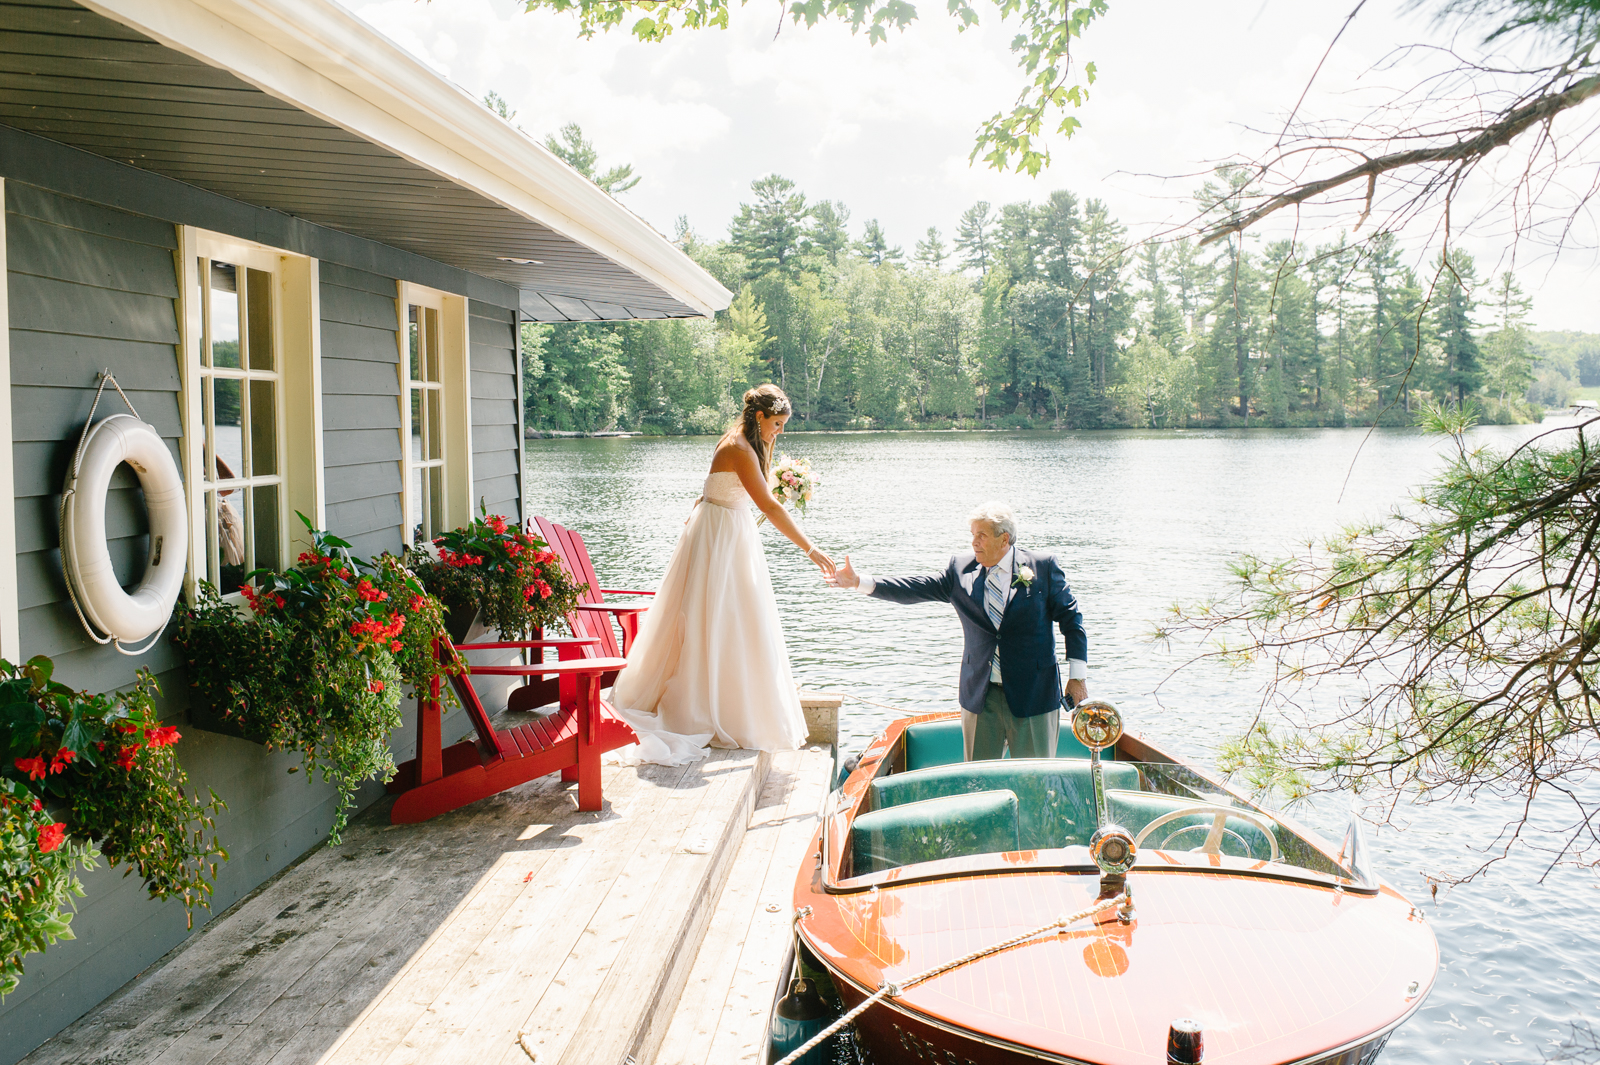 tara mcmullen photography muskoka wedding photographer st peters on the rock wedding photos muskoka wedding photos where to get married in muskoka camp ooch wedding-013